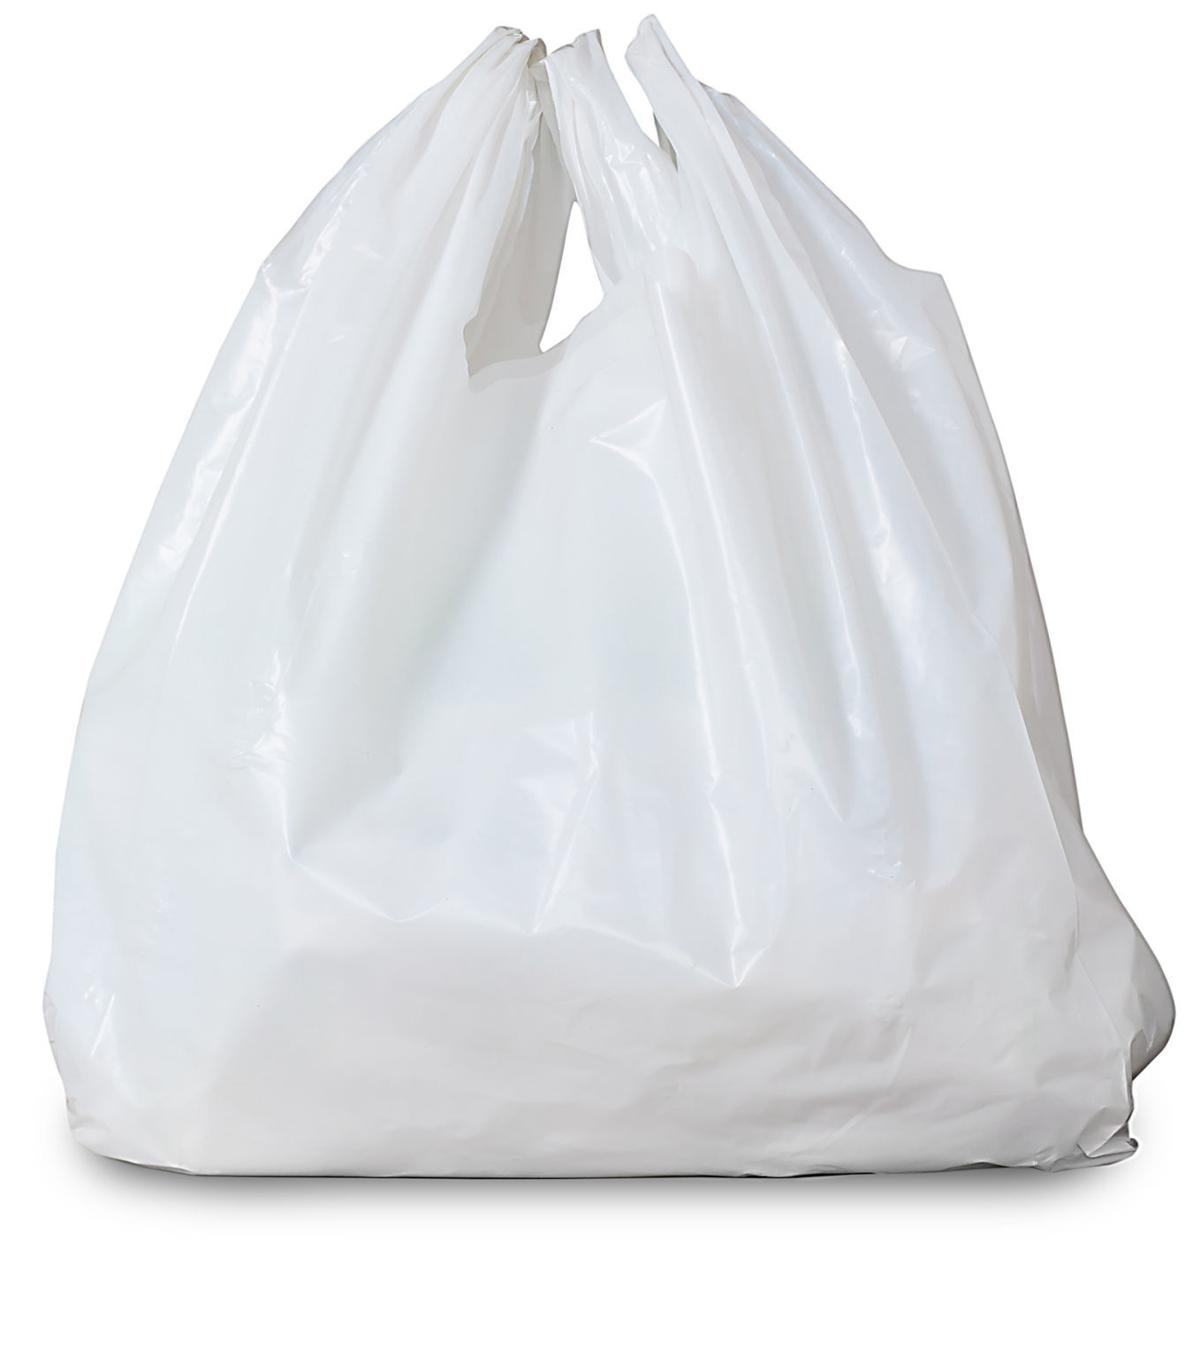 Image result for plastic bag